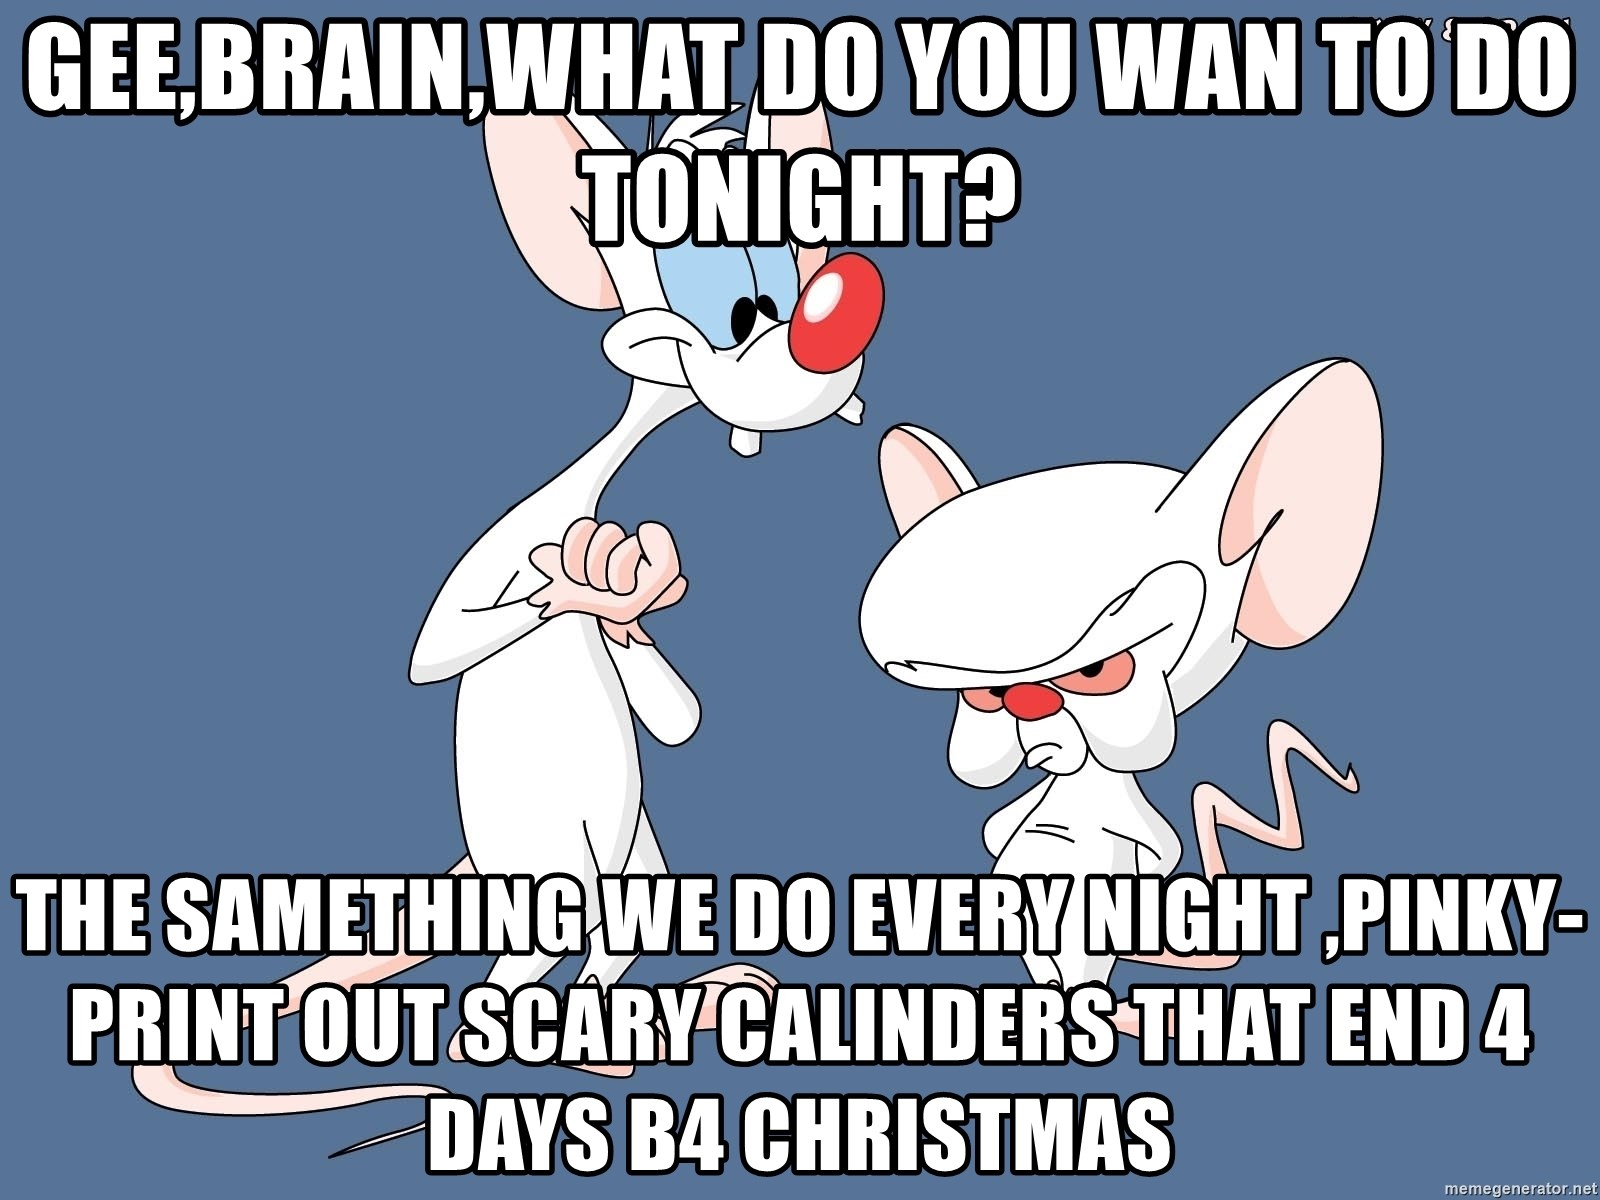 gee brain what do you wan to do tonight the samething we do every